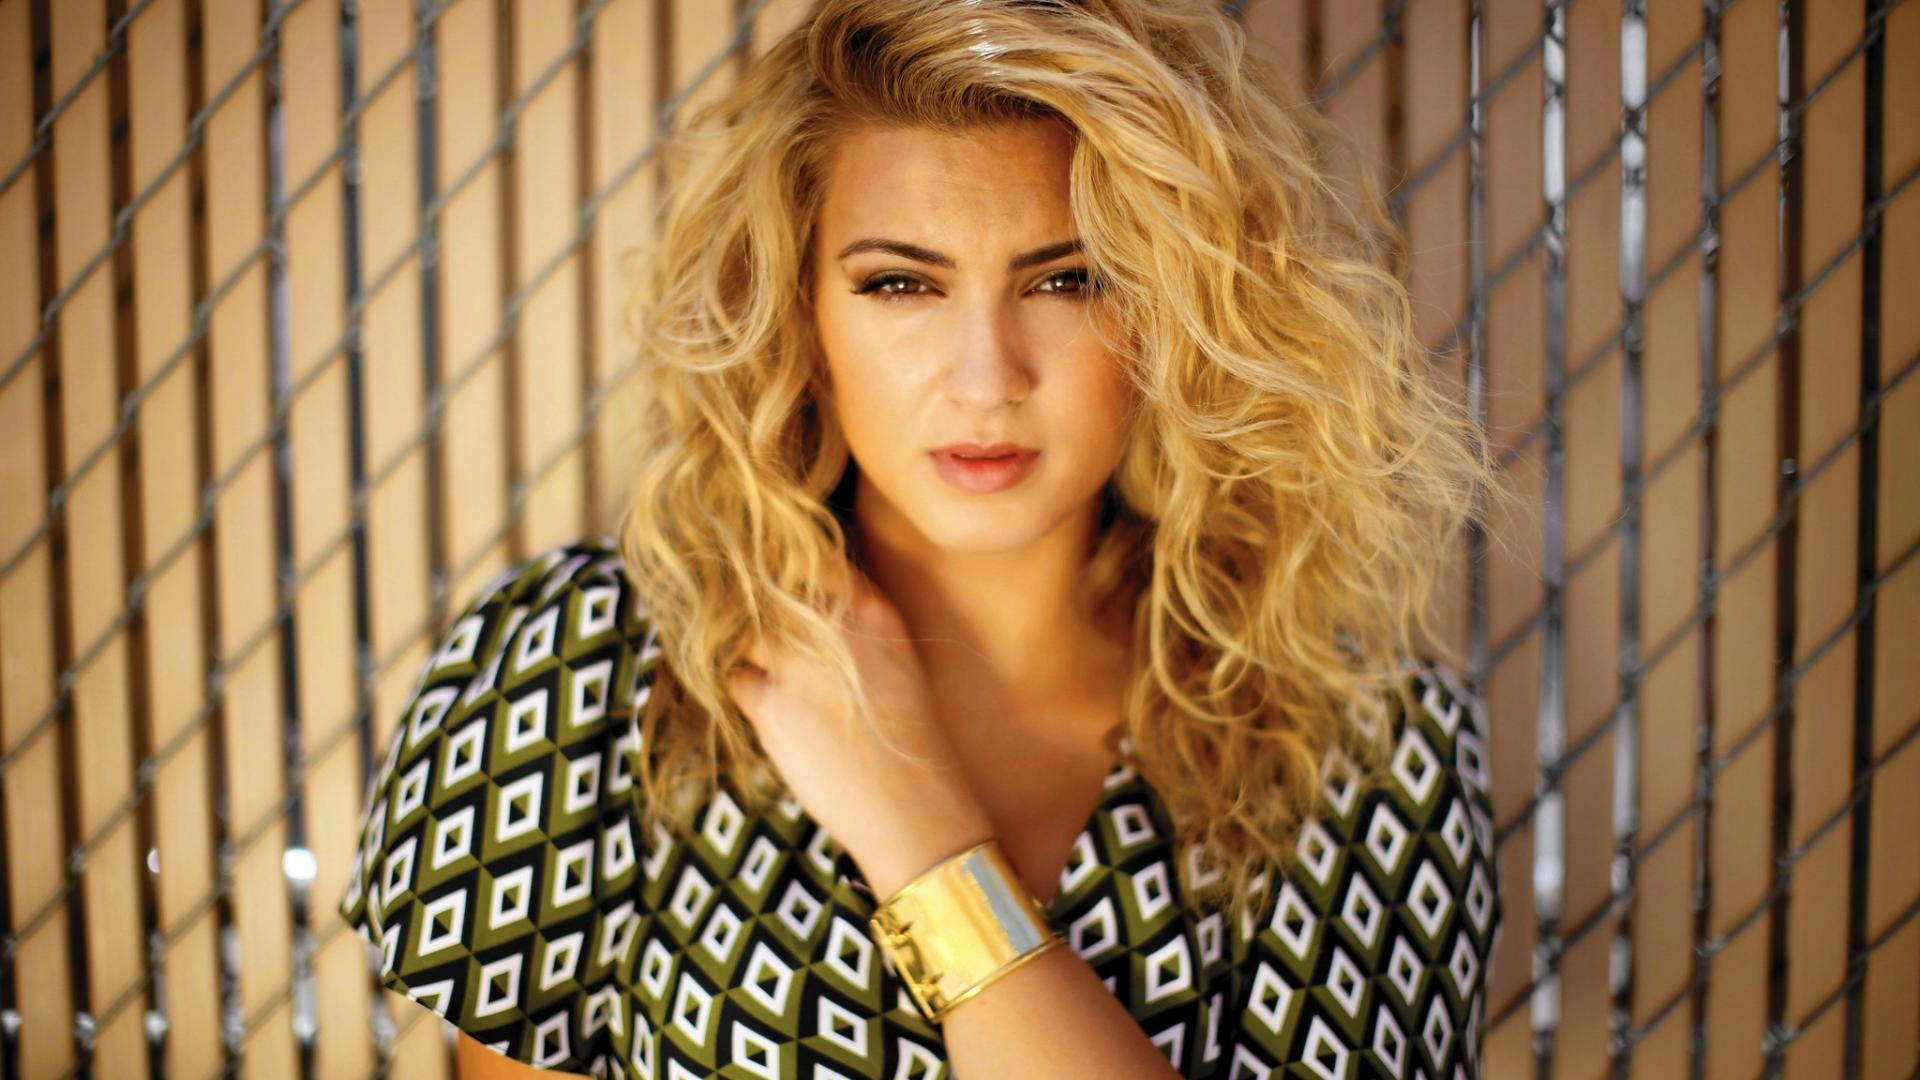 tori kelly desktop hd wallpaper 59648